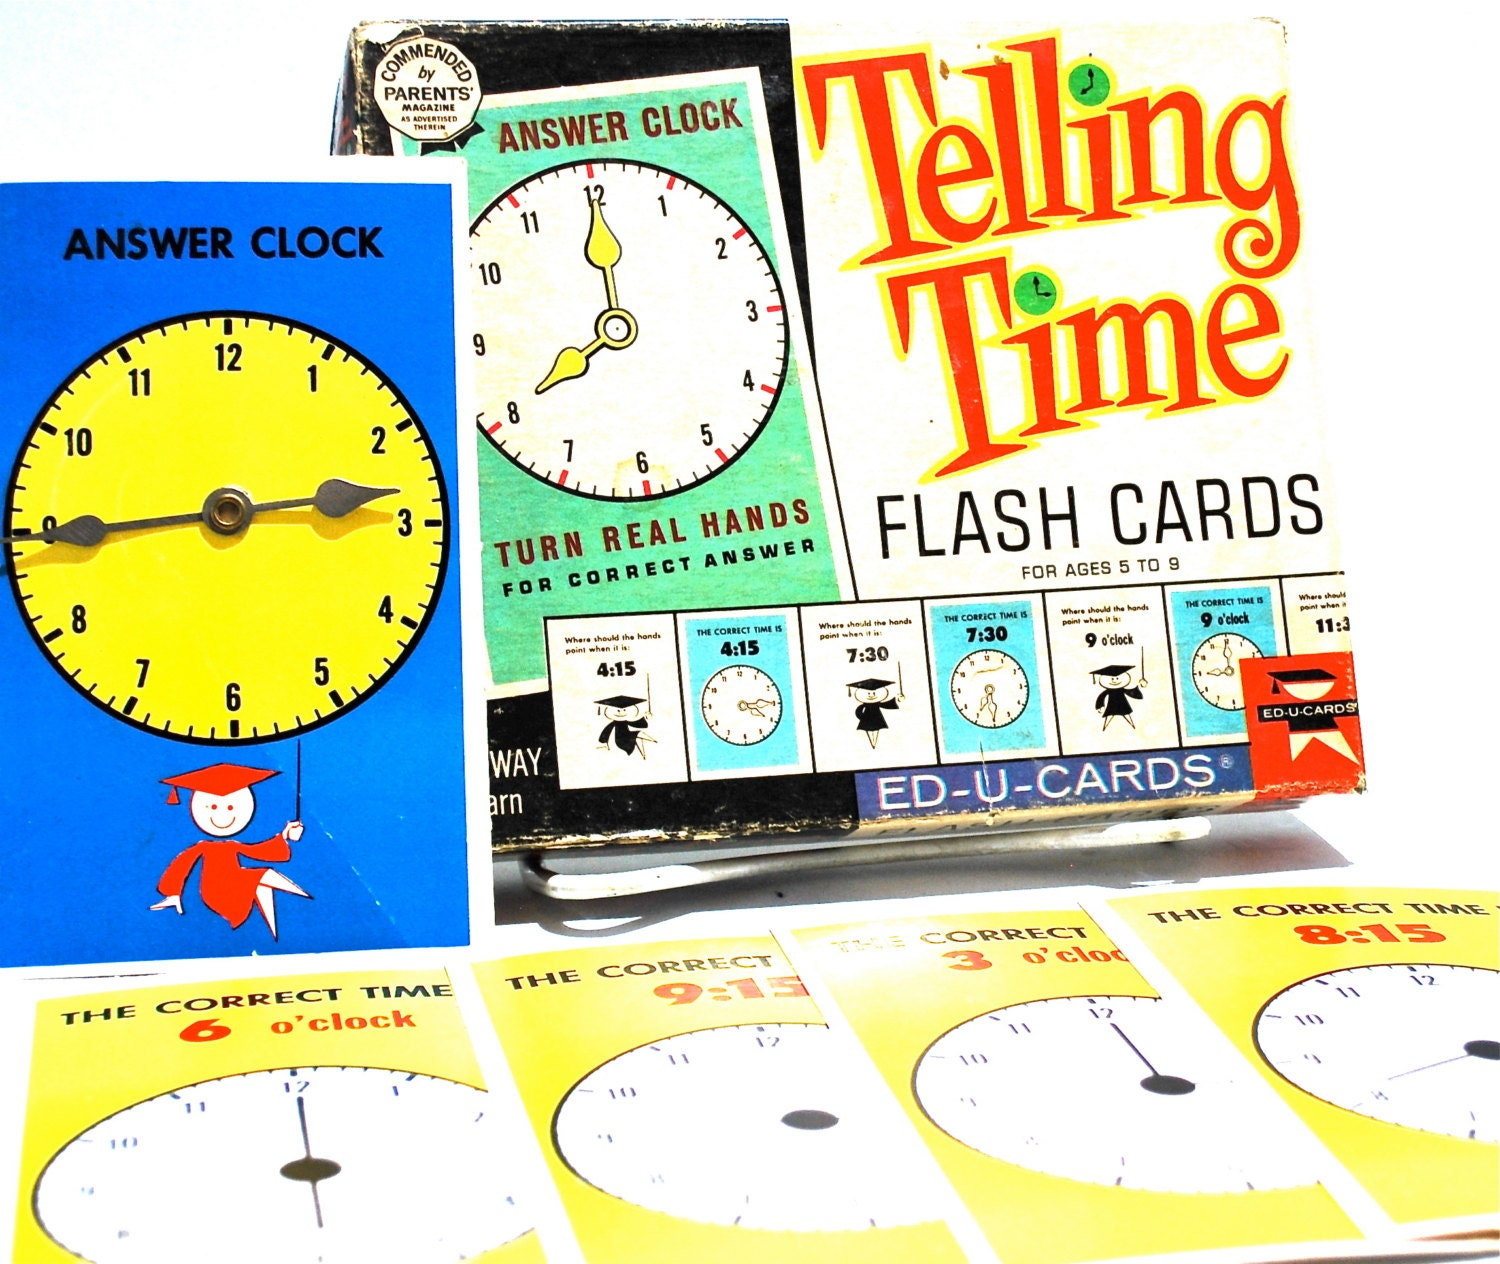 worksheet Time Flash Cards clock flash cards combining like terms and distributive property telling time by ed u from wonderlandtoys on etsy il fullxfull time